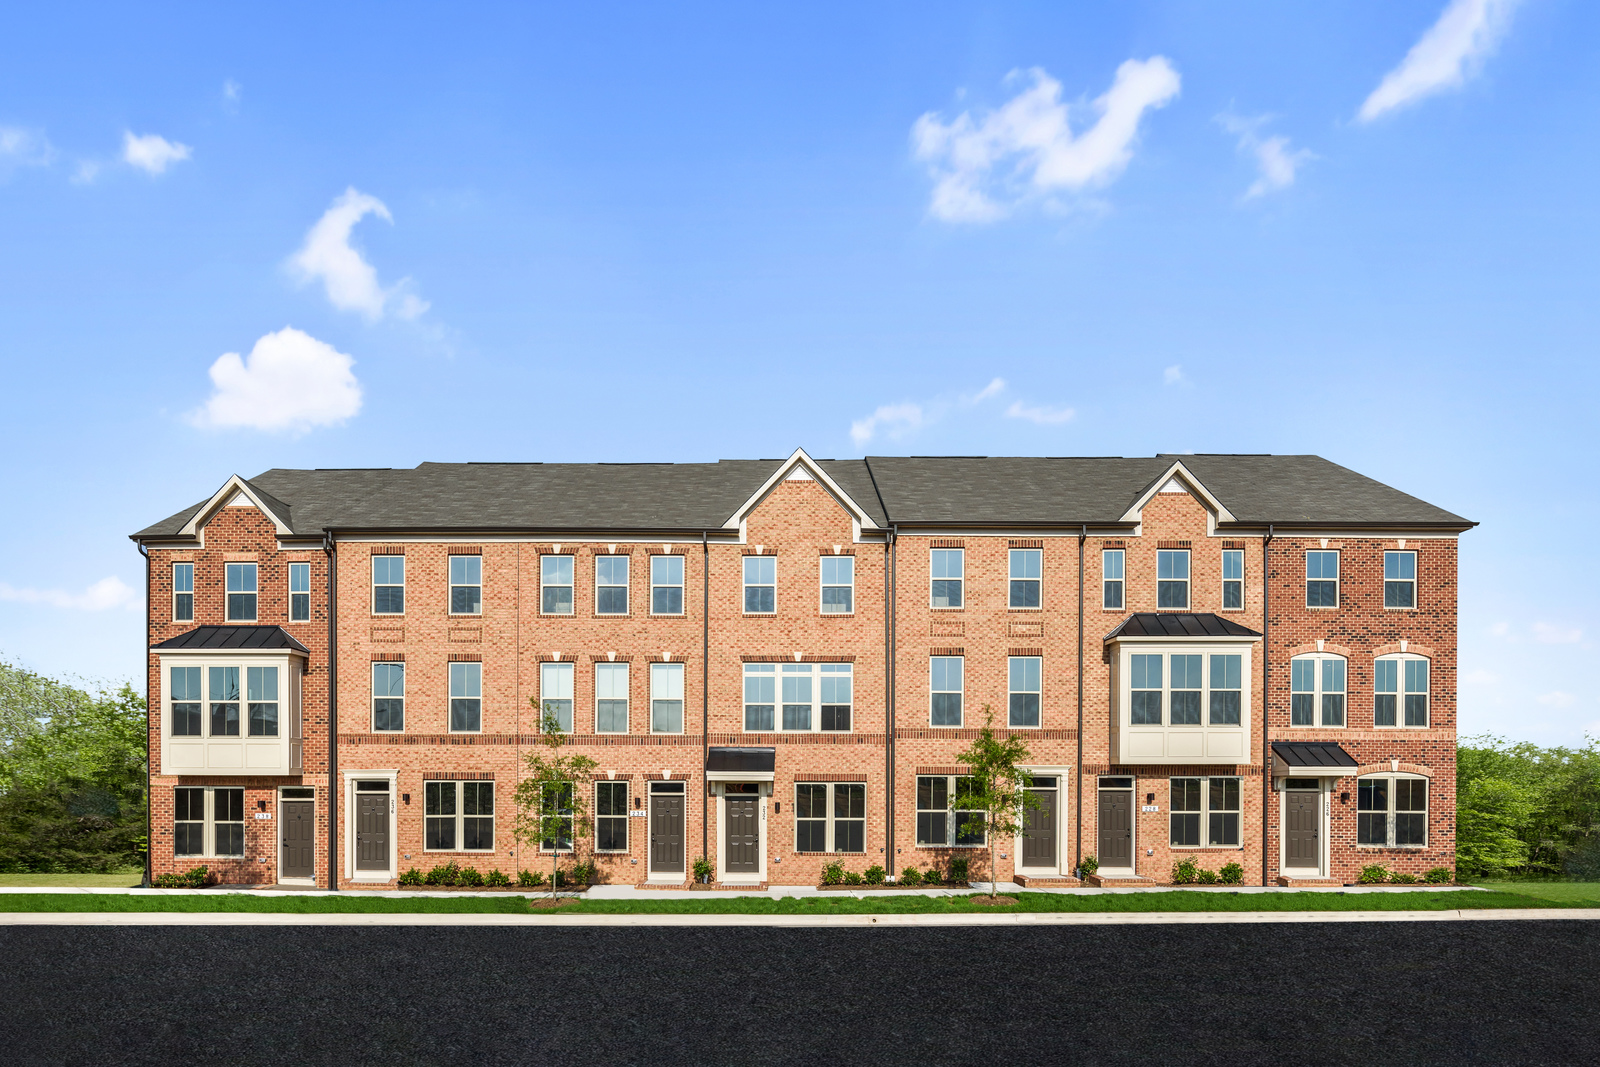 Incredible New Clarendon 4 Story Townhome Model For Sale At Oldham Download Free Architecture Designs Scobabritishbridgeorg